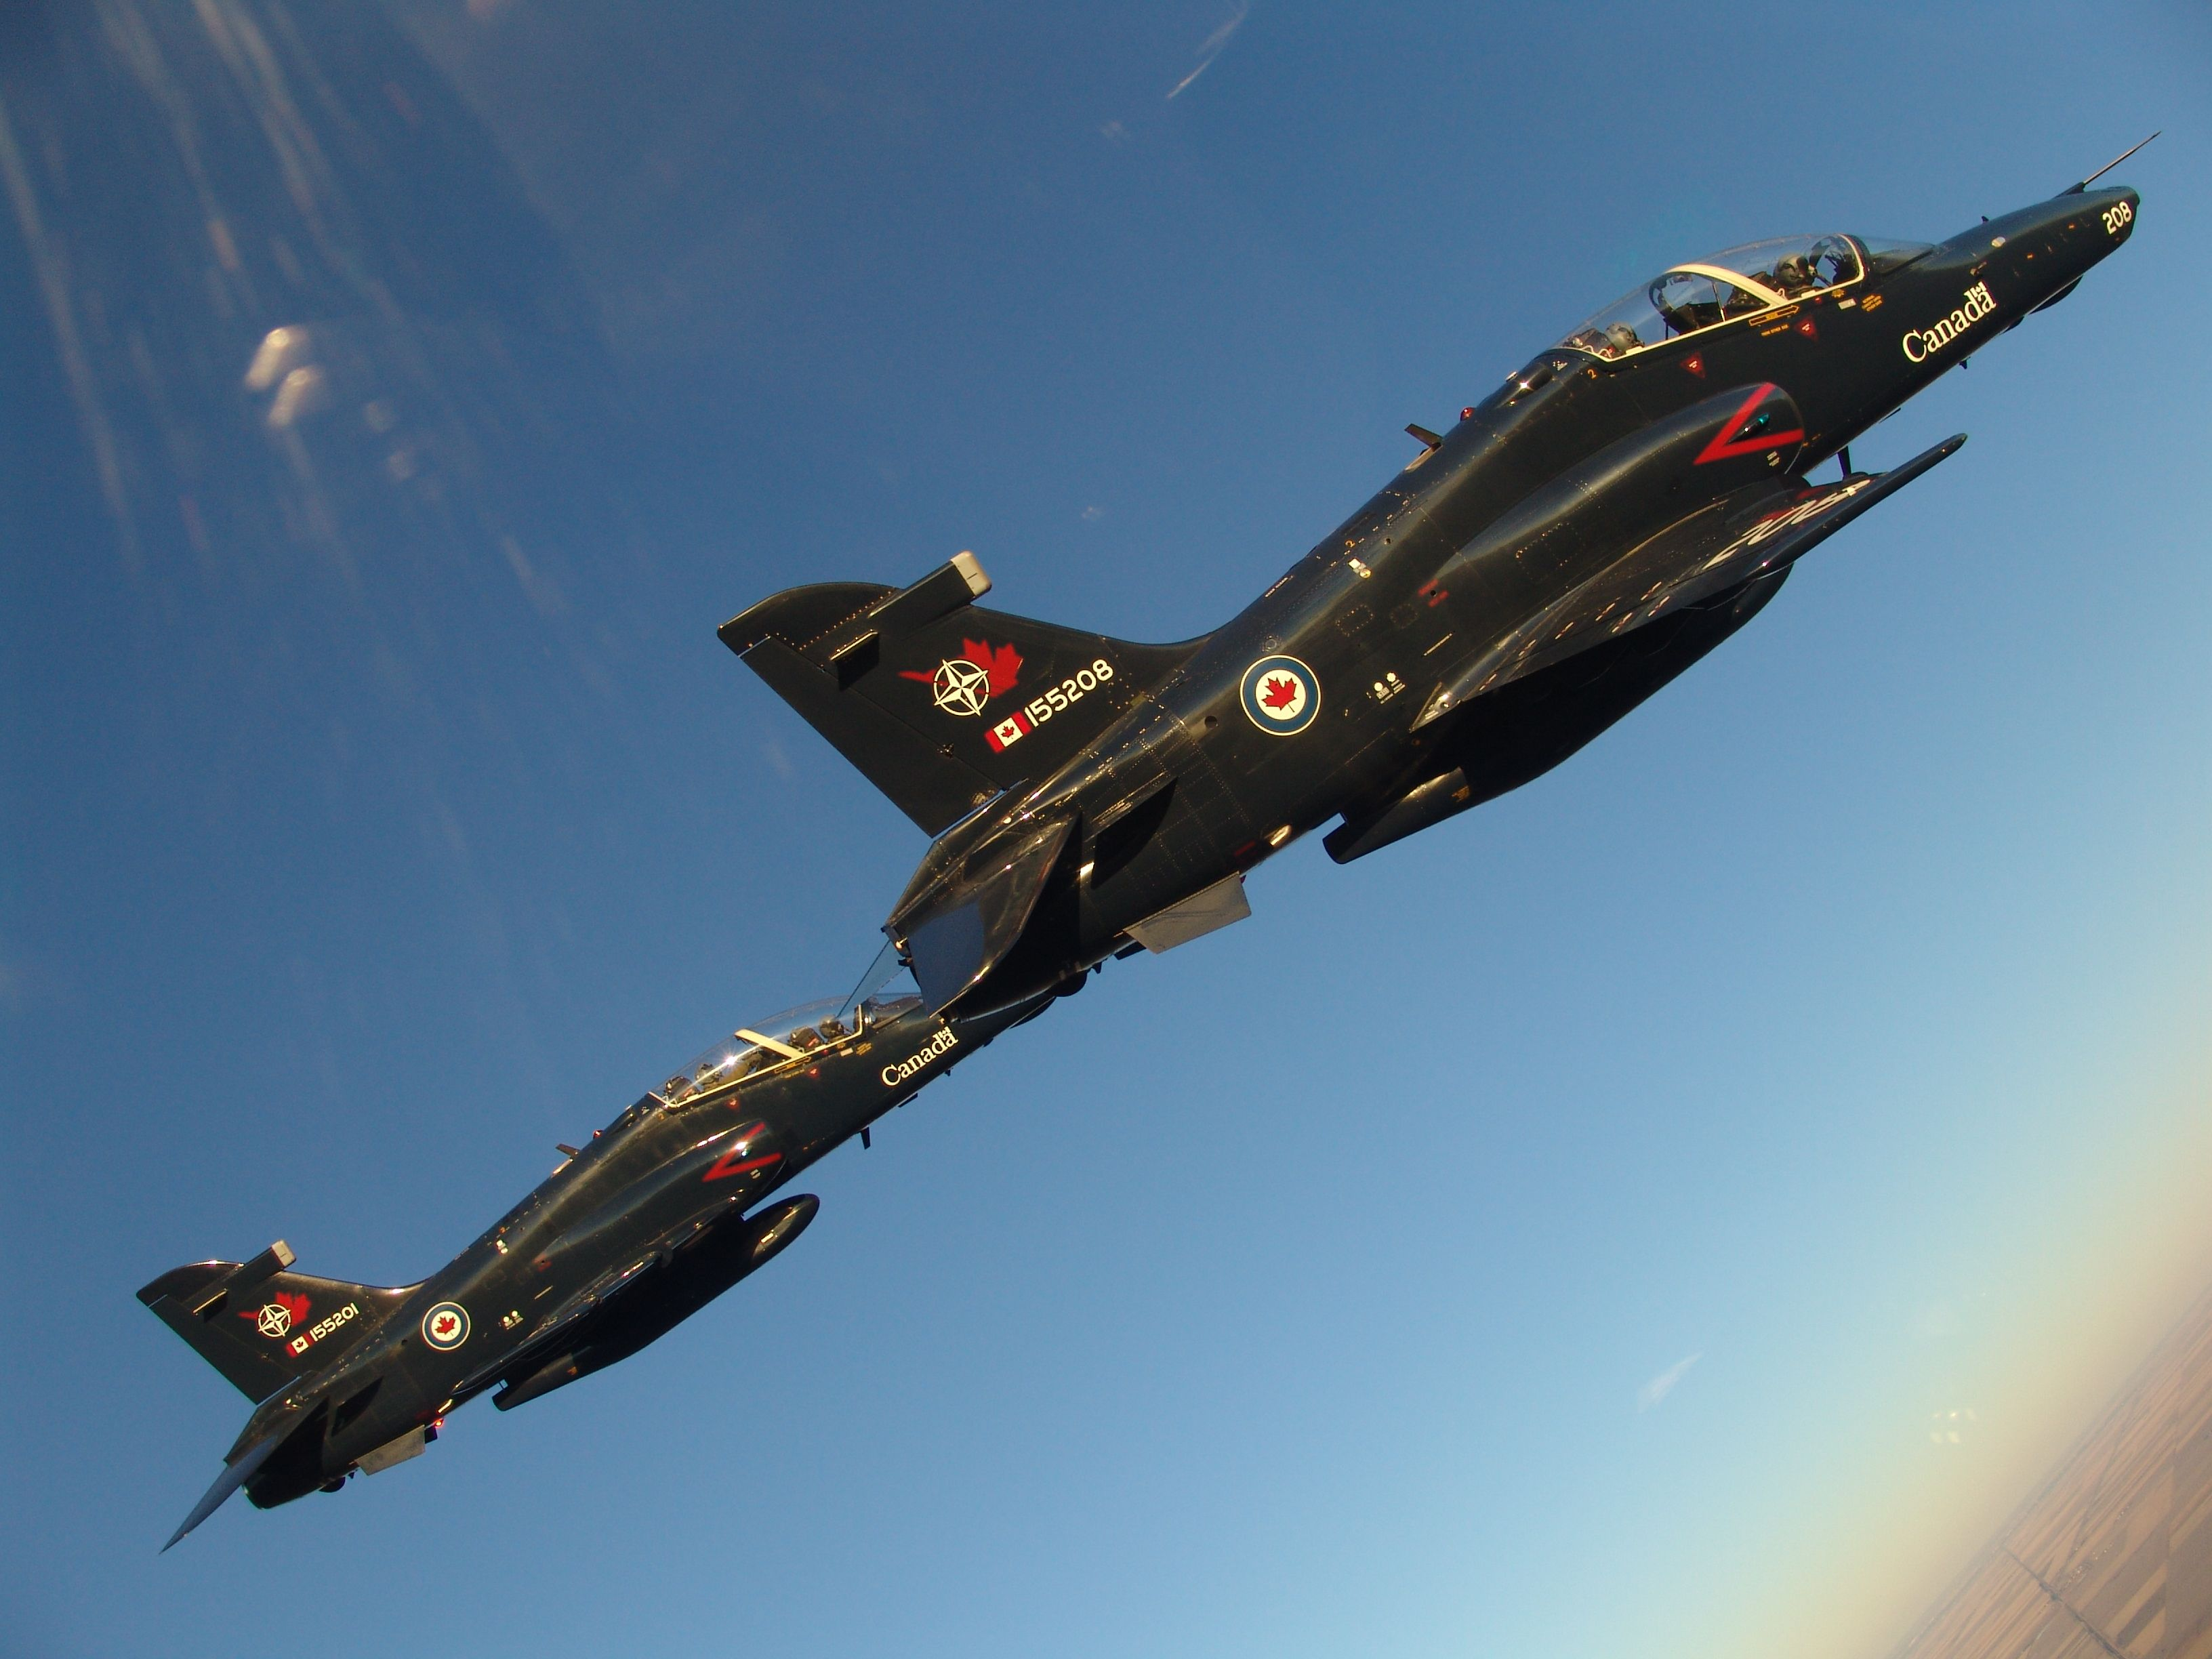 a formation flight of ct